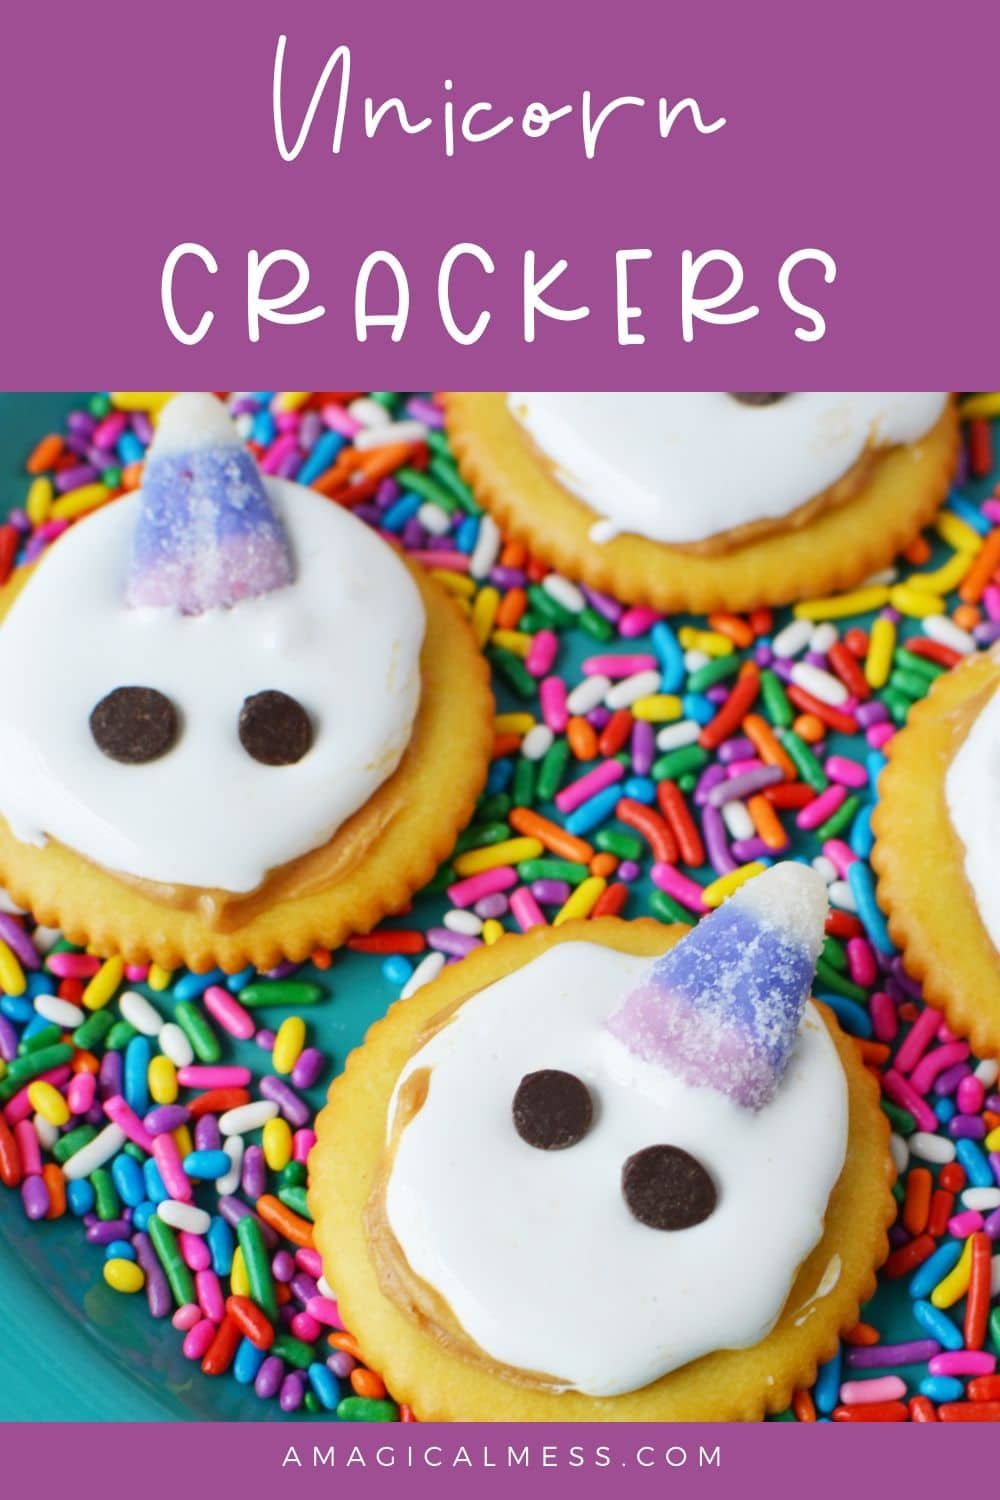 crackers with unicorn faces